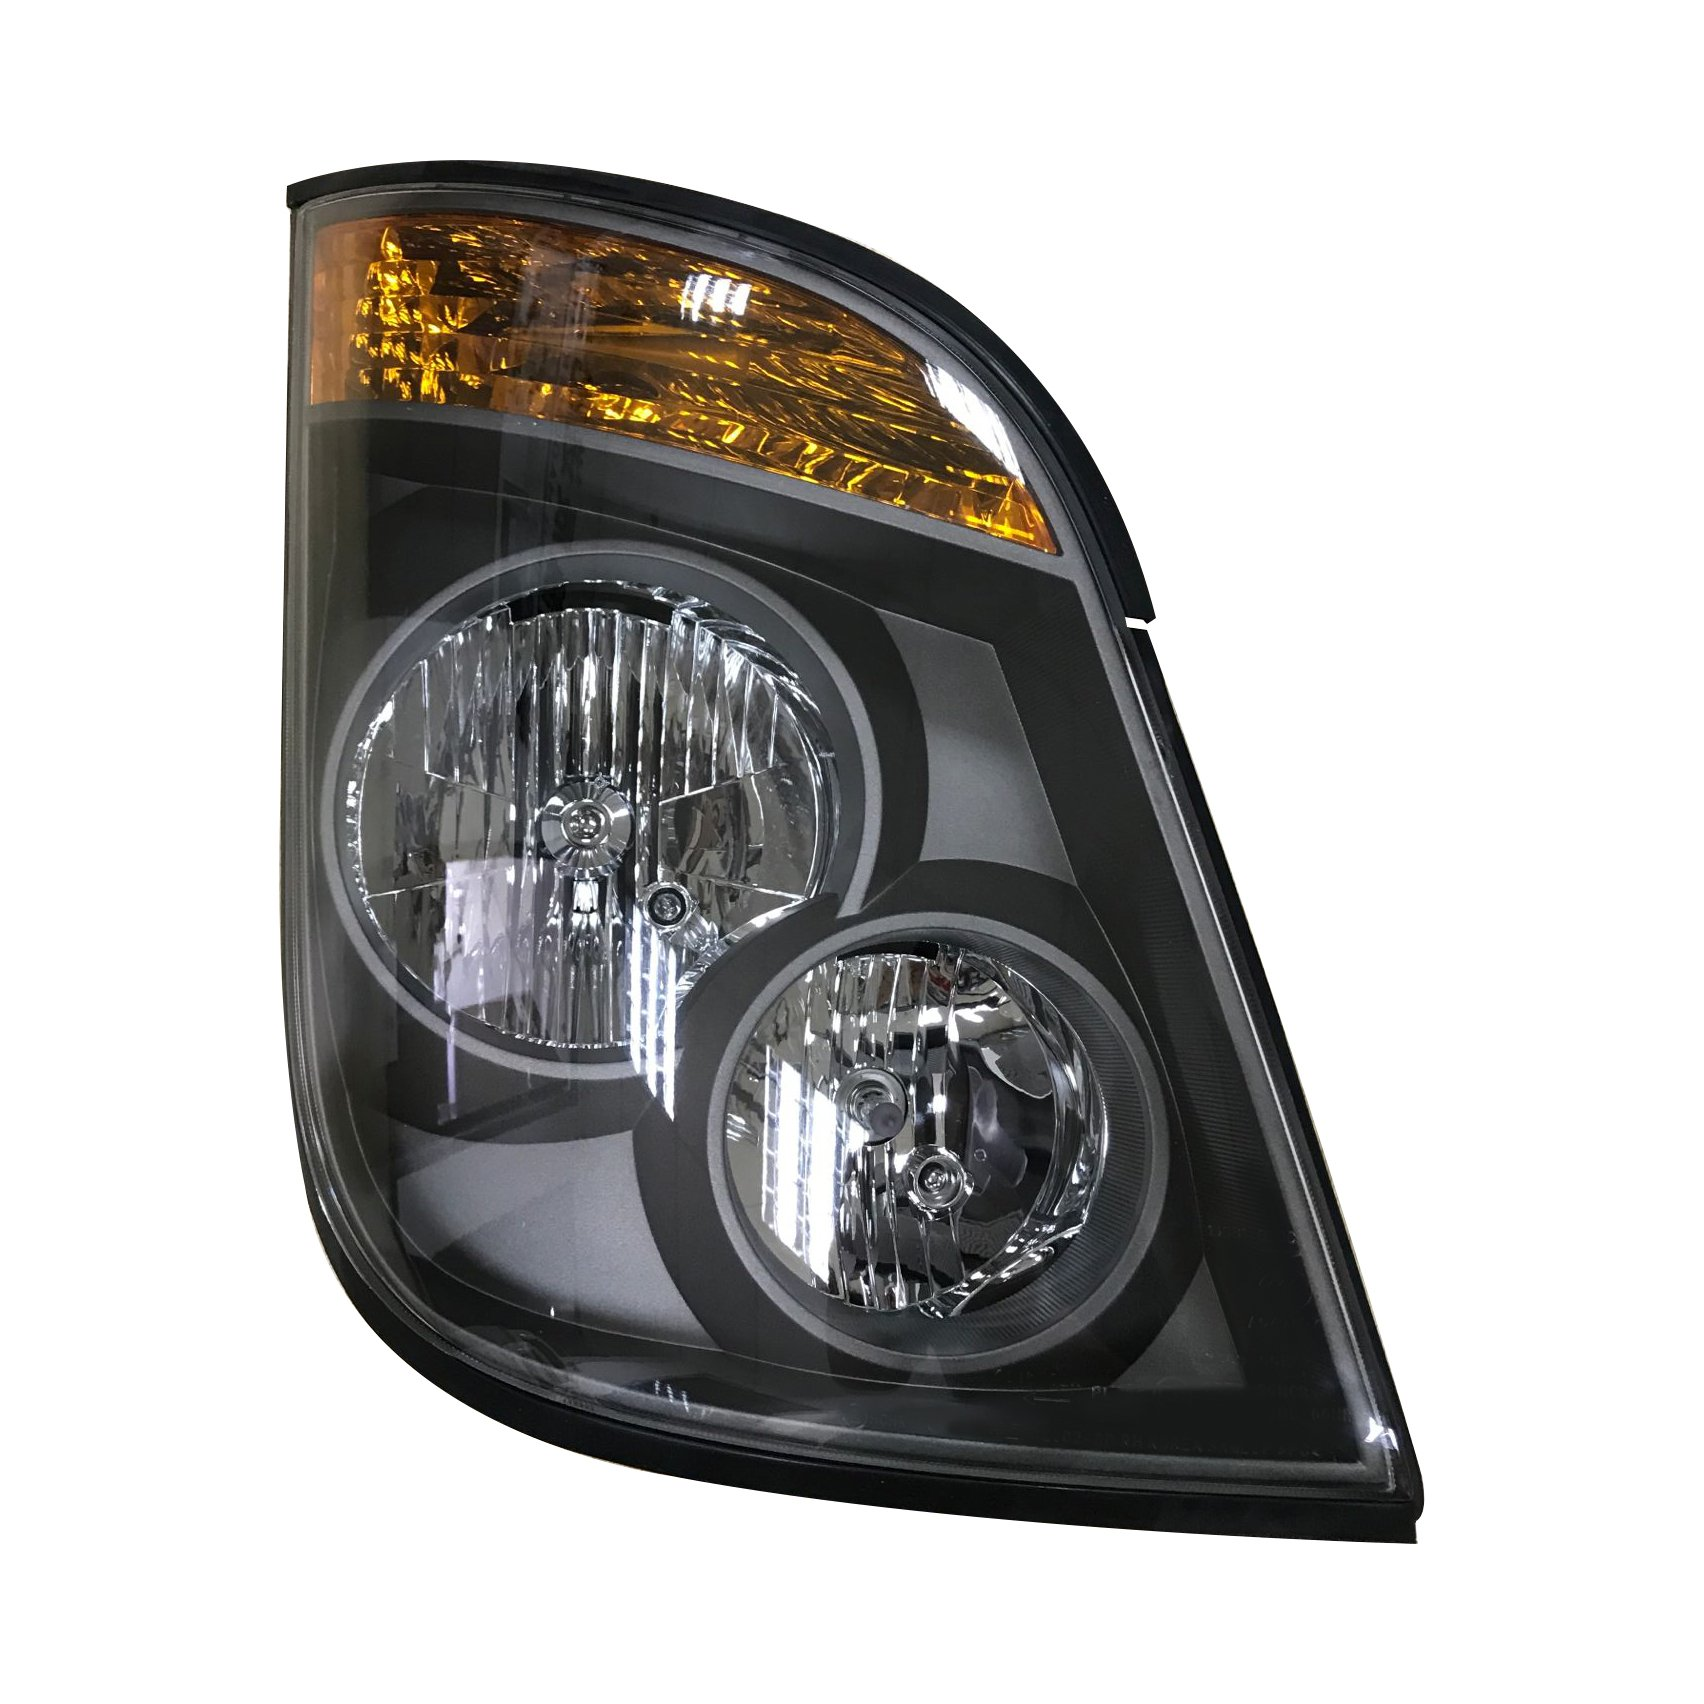 HC-B-1082-2 Hyundai Bus Head Lamp for Universe Black